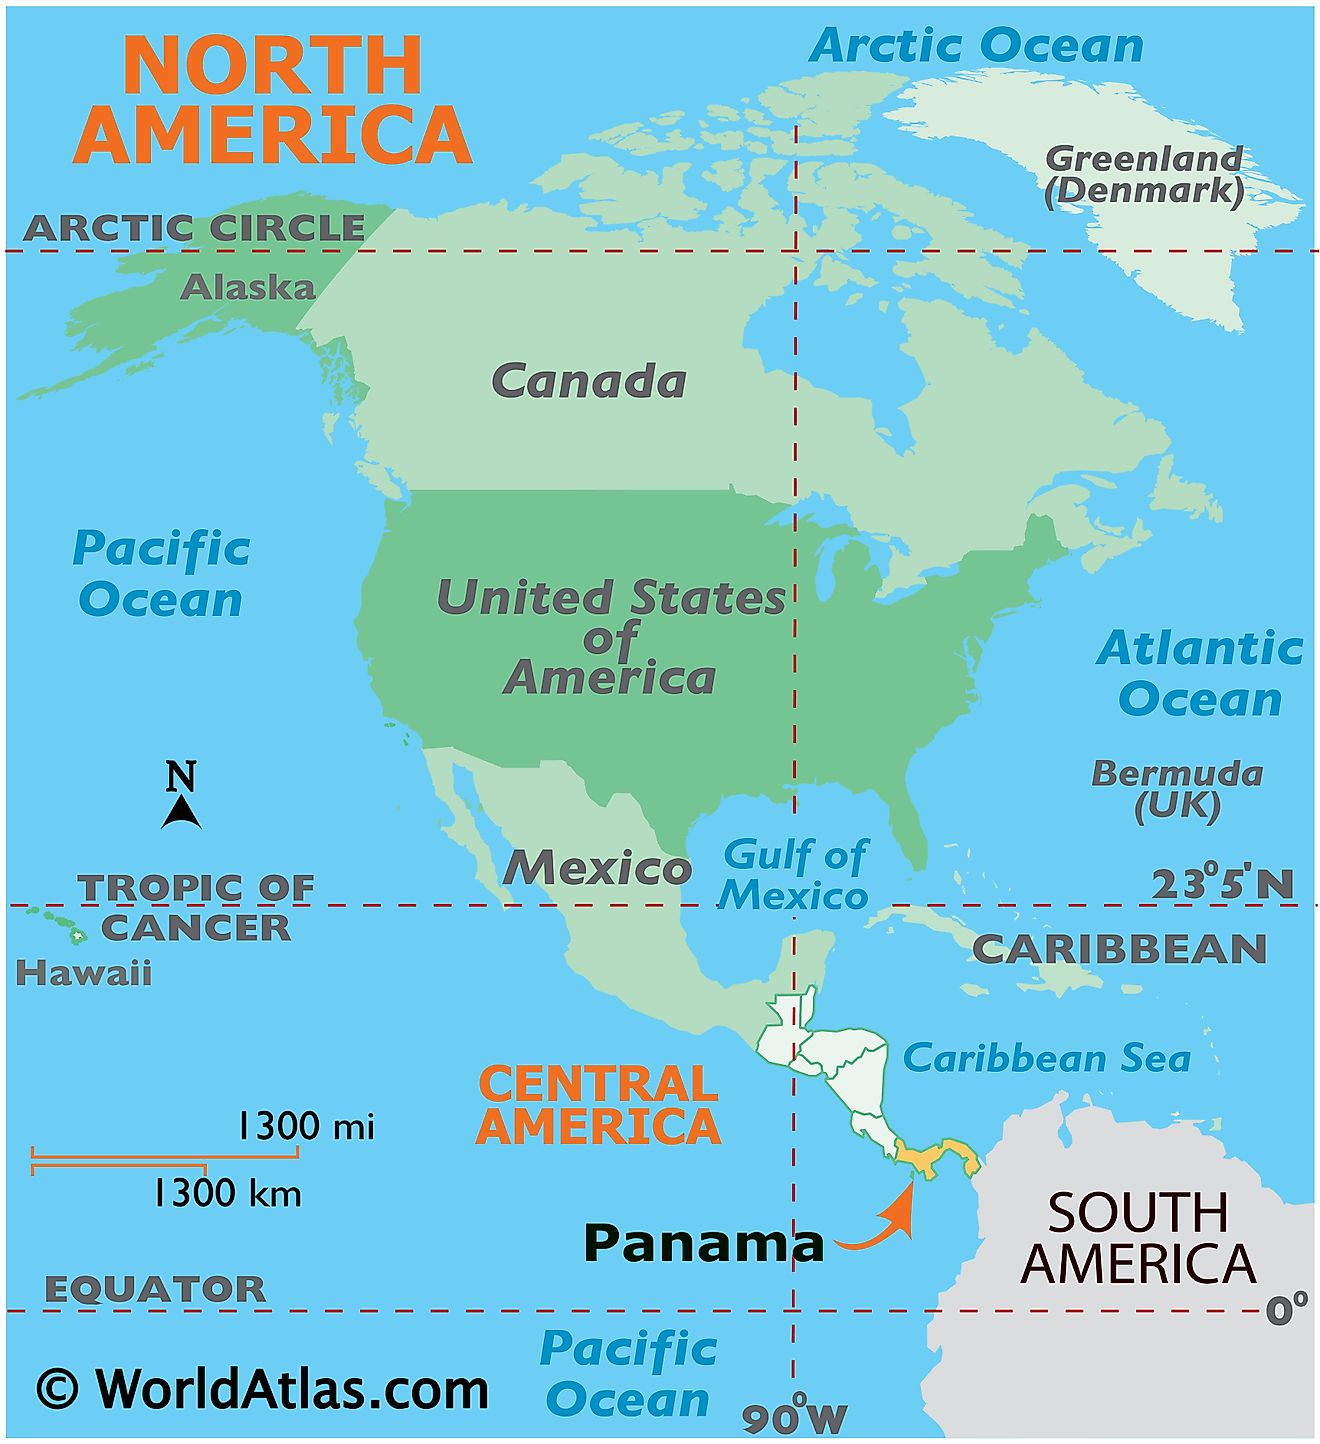 Map showing location of Panama in the world.